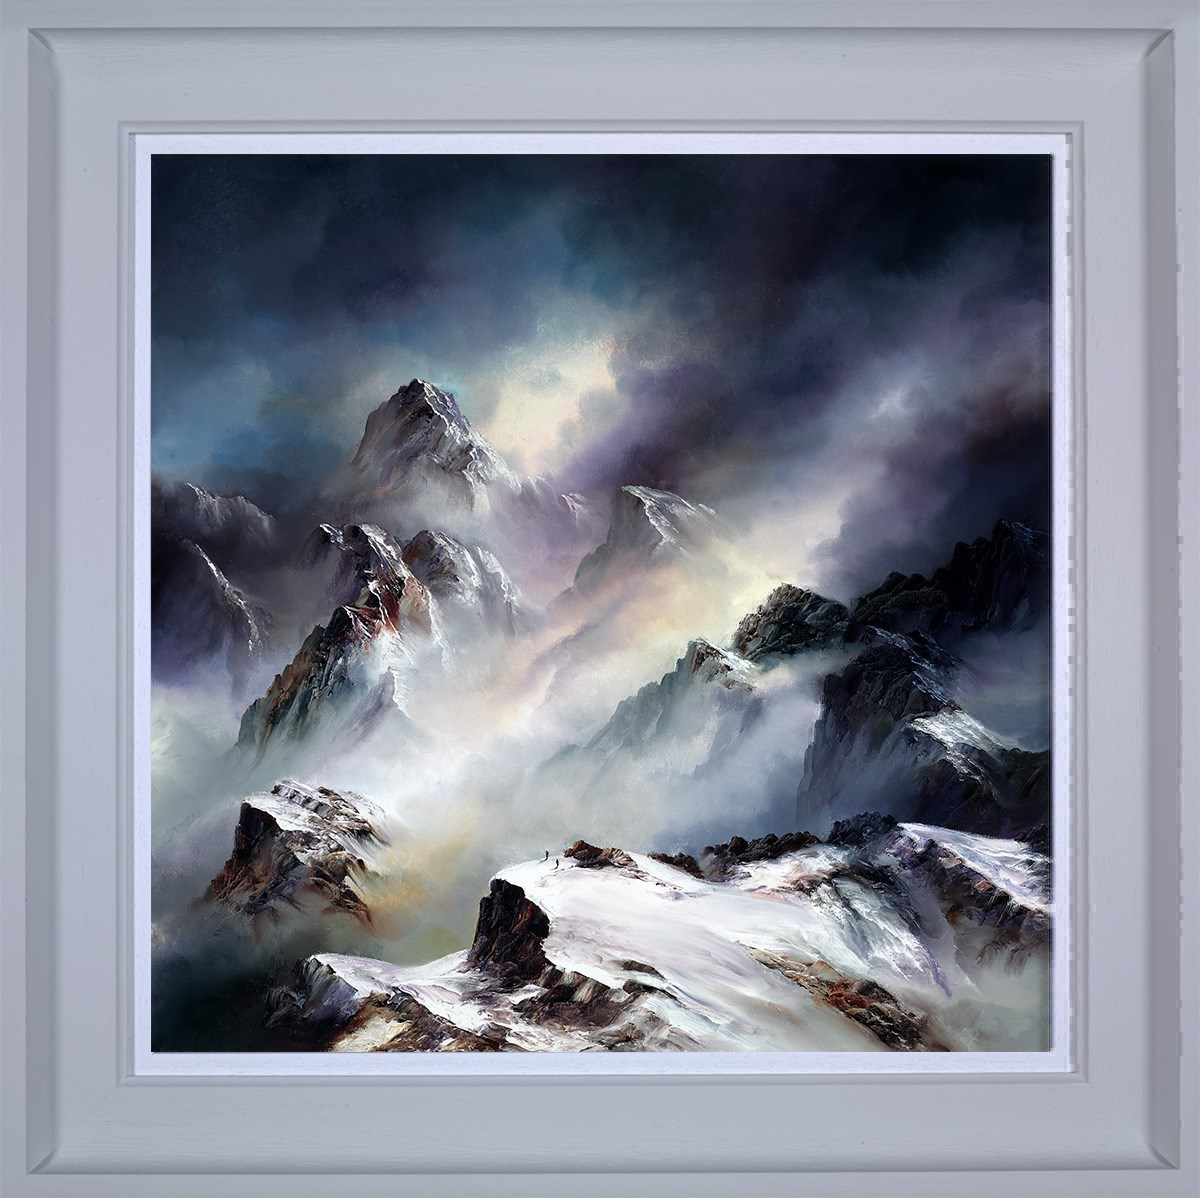 Furthest Reaches by Philip Gray - Hand Finished Limited Edition on Canvas sized 20x20 inches. Available from Whitewall Galleries